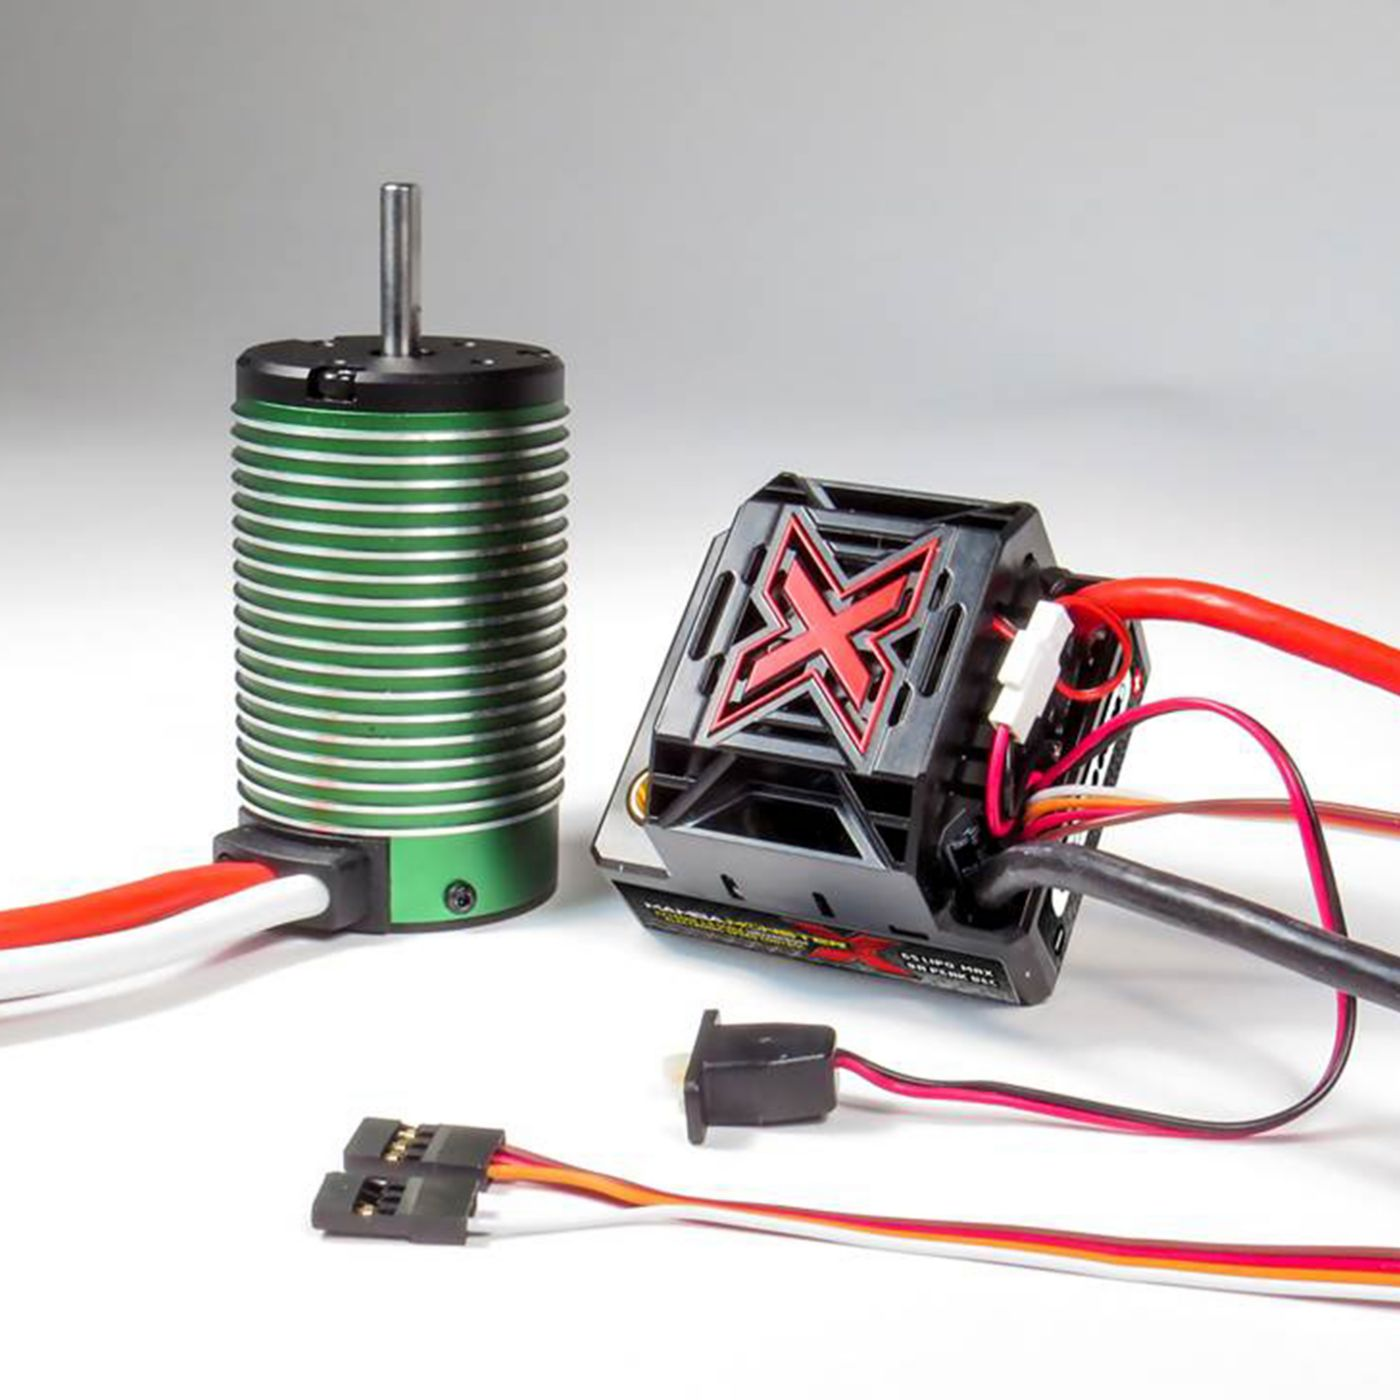 1 8 mamba monster x waterproof esc with 2200kv motor combo horizon rh horizonhobby com mamba monster esc manual mamba monster esc manual